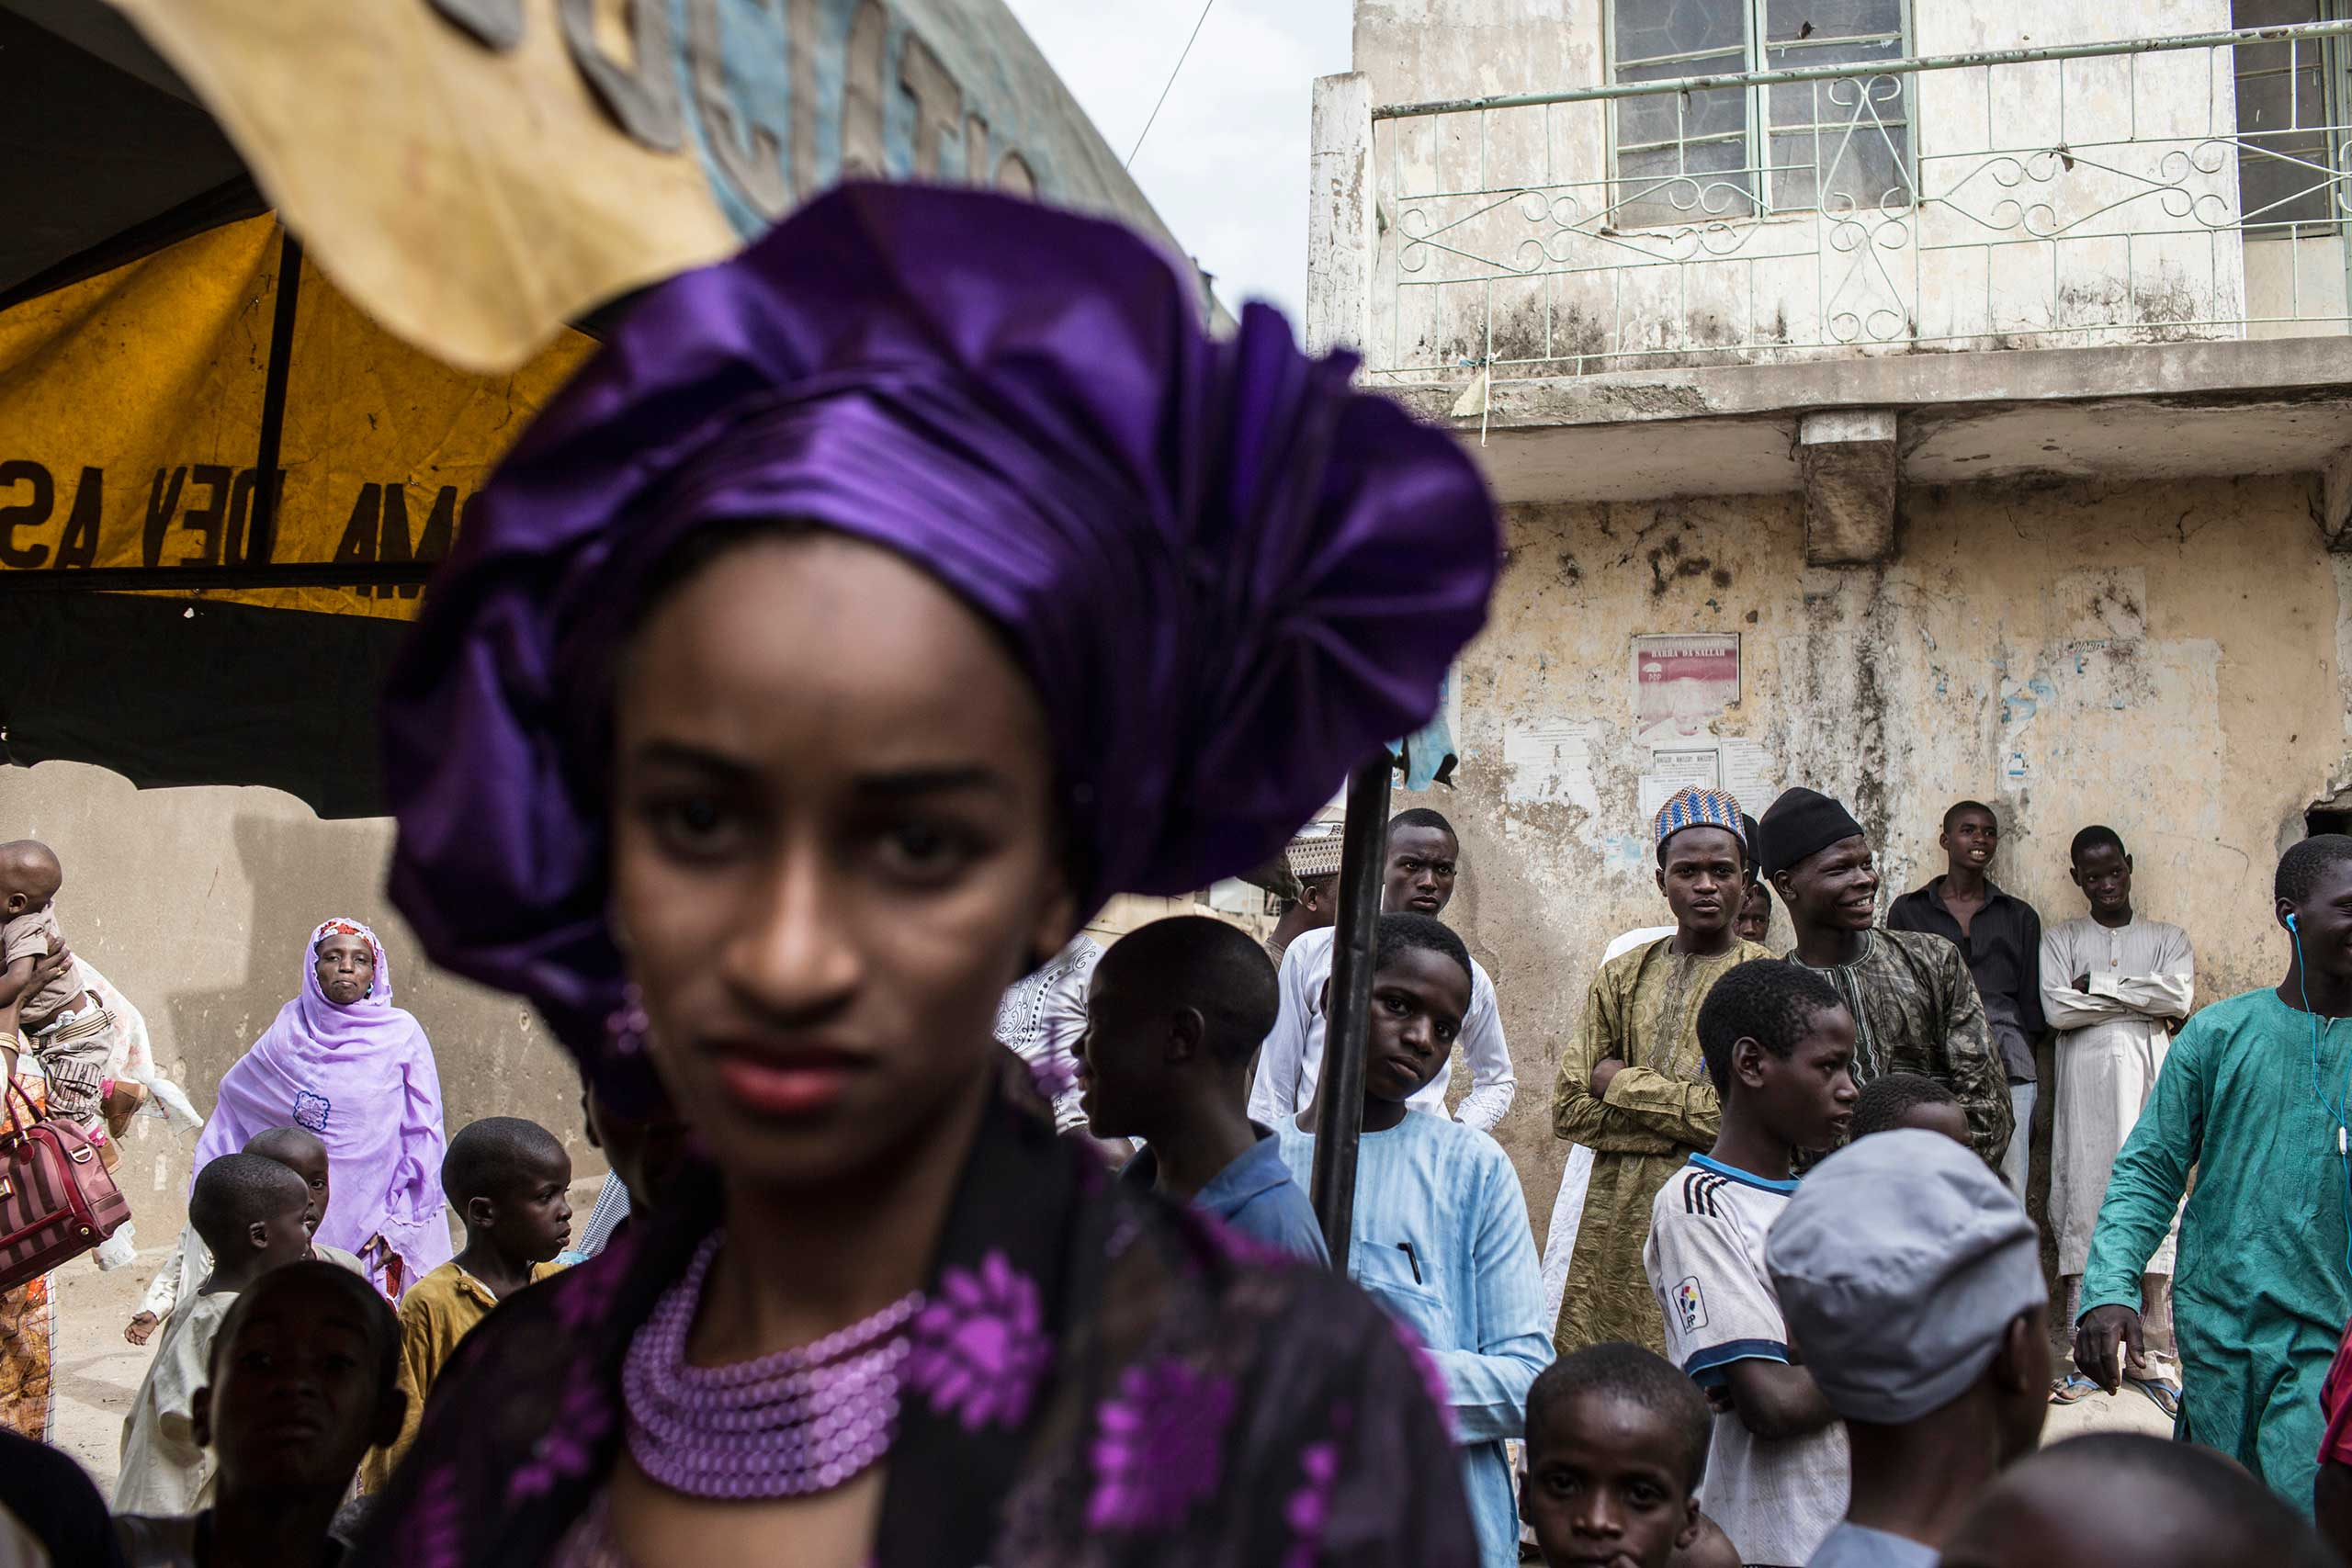 A bride at a wedding stands apart from the guests, Kano, Northern Nigeria. April 7, 2013.